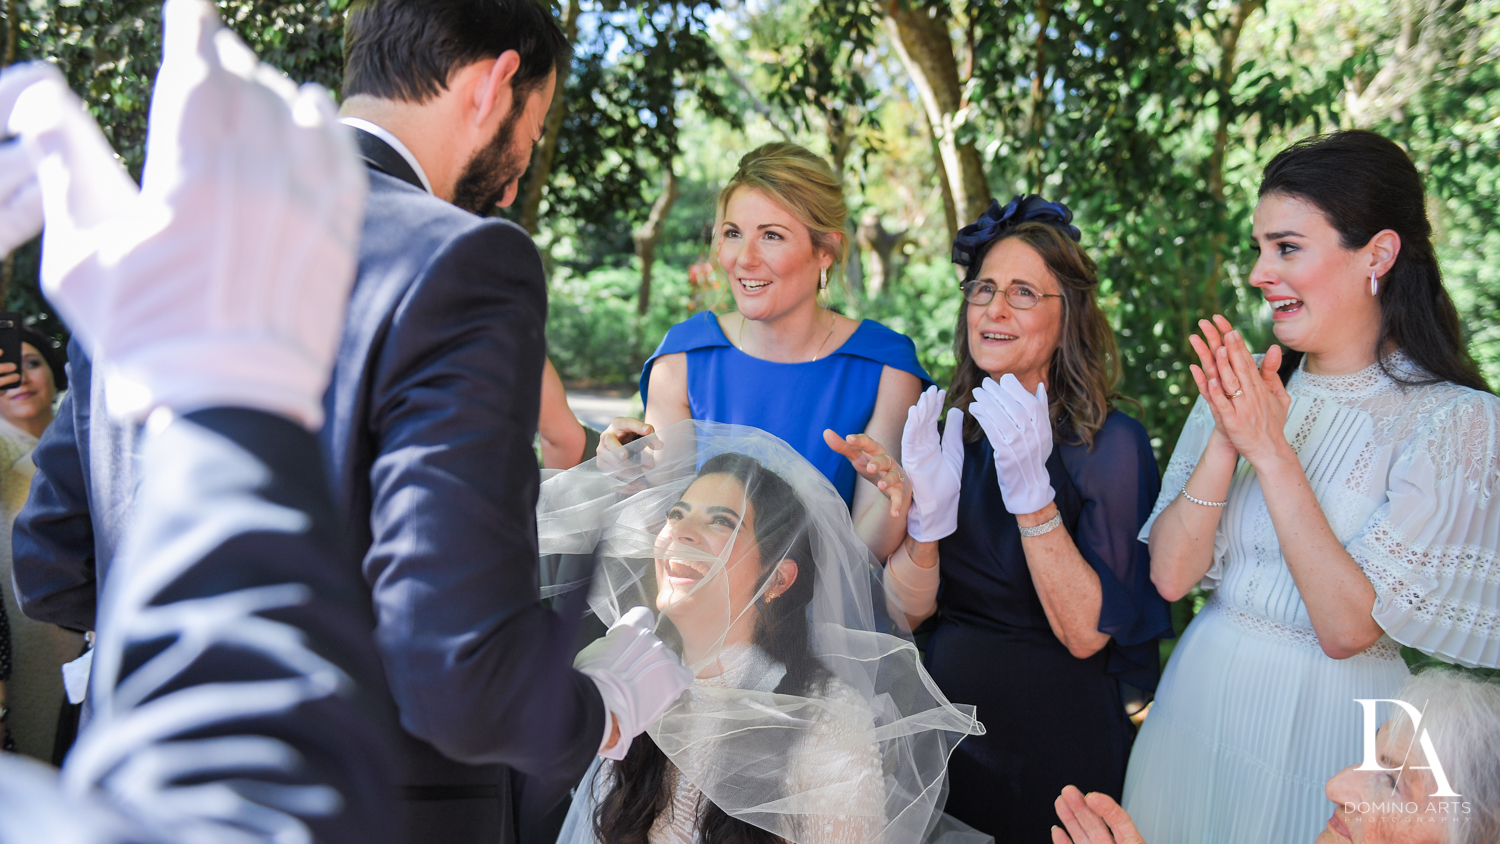 customs at Traditional Jewish Wedding at Deering Estate Miami by Domino Arts Photography